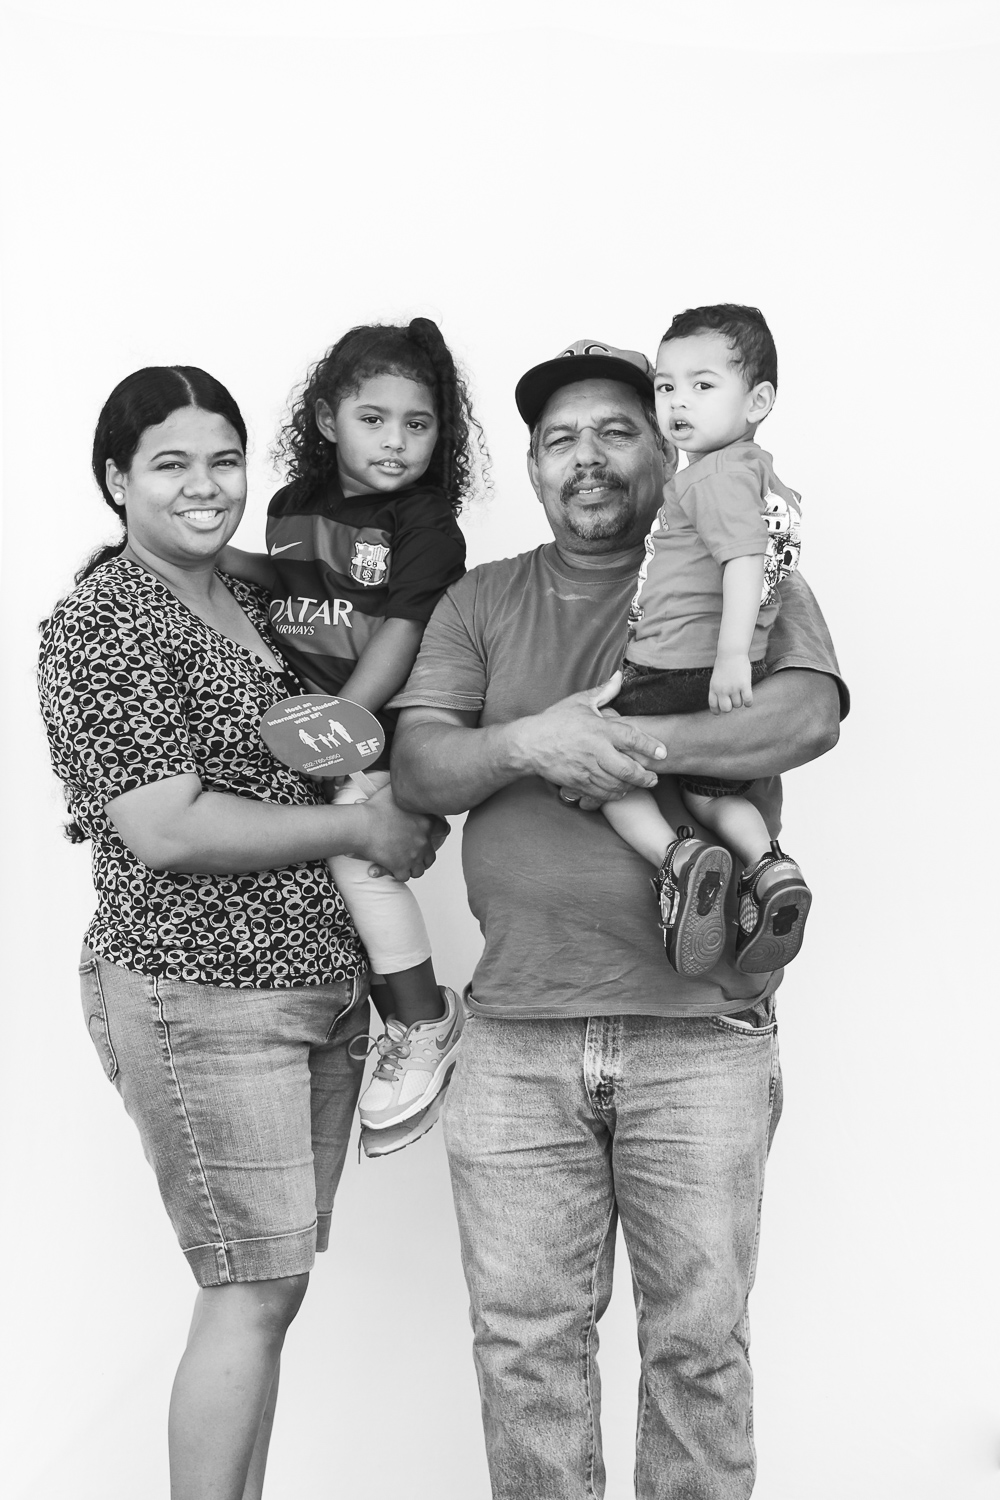 Been living in Hyattsville for 6 years. Maria, Miguel, Walter, Alejandra